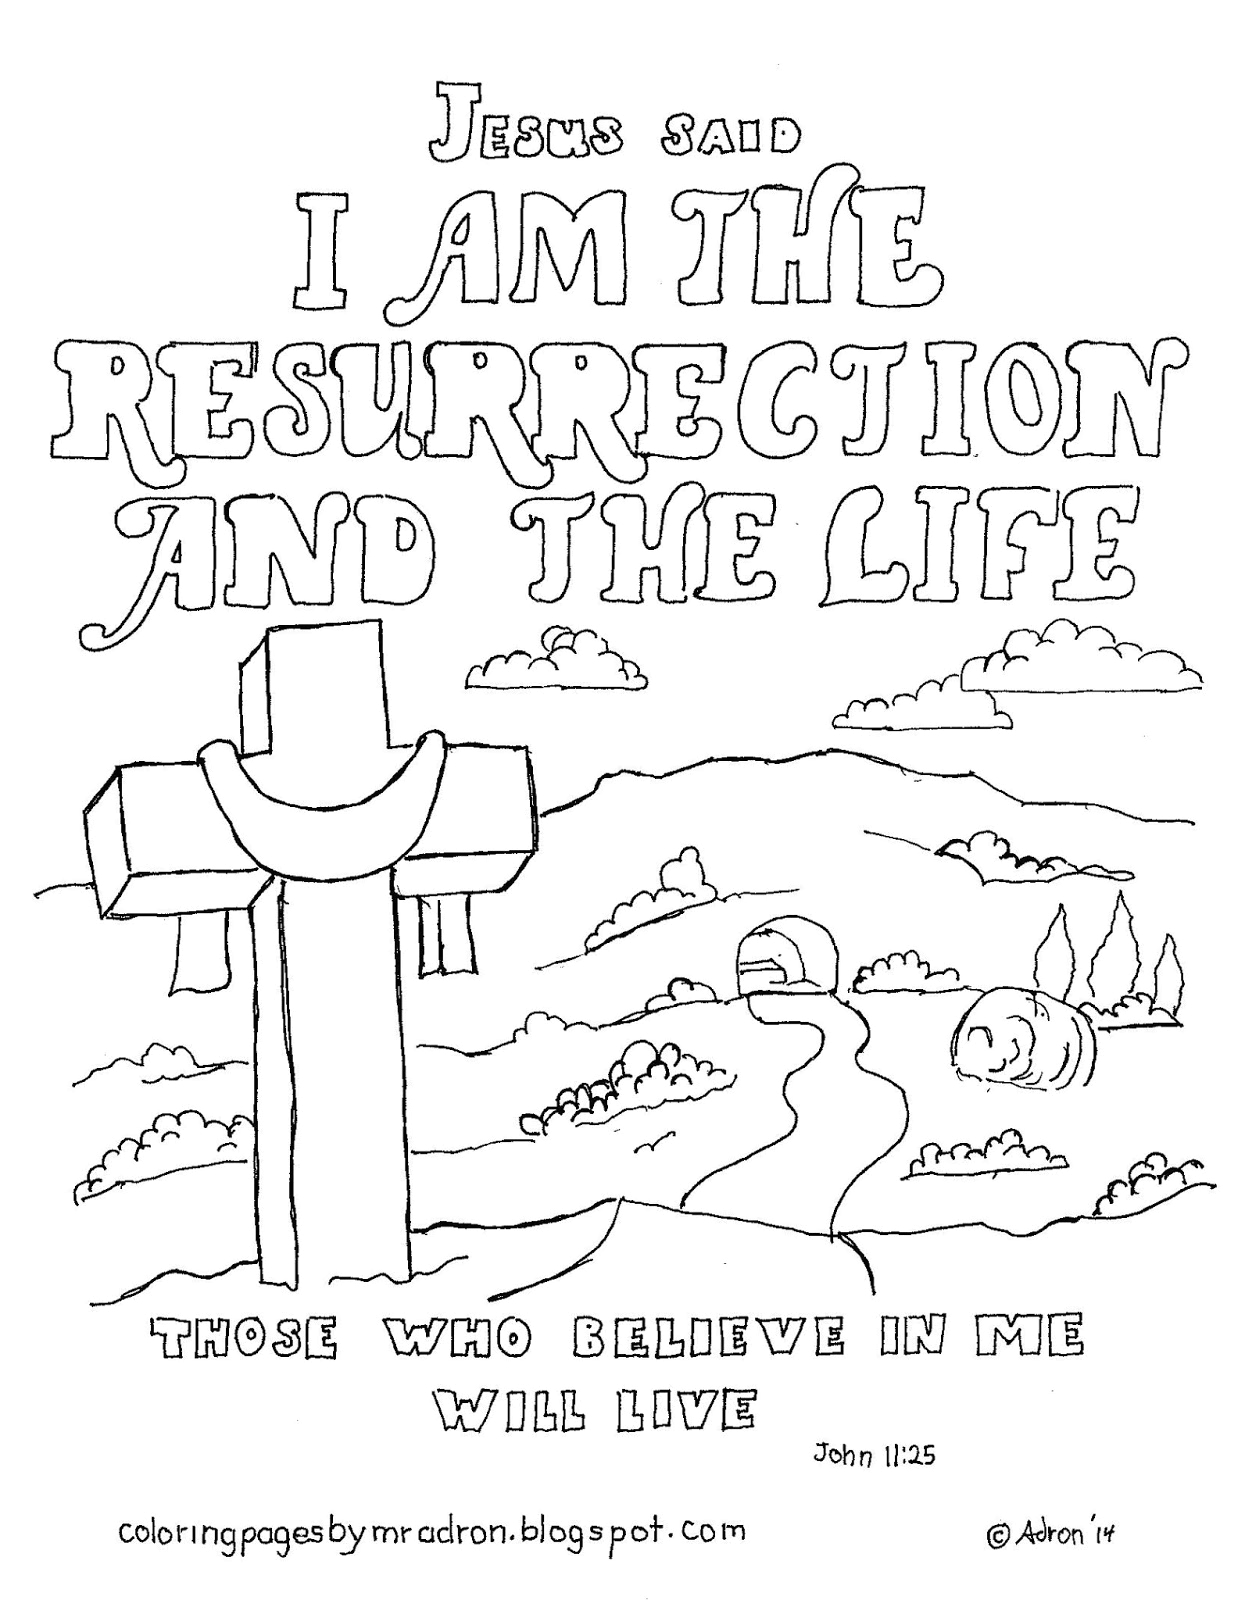 I Am the Resurrection and the Life Coloring Page Coloring Pages for Kids by Mr Adron I Am the